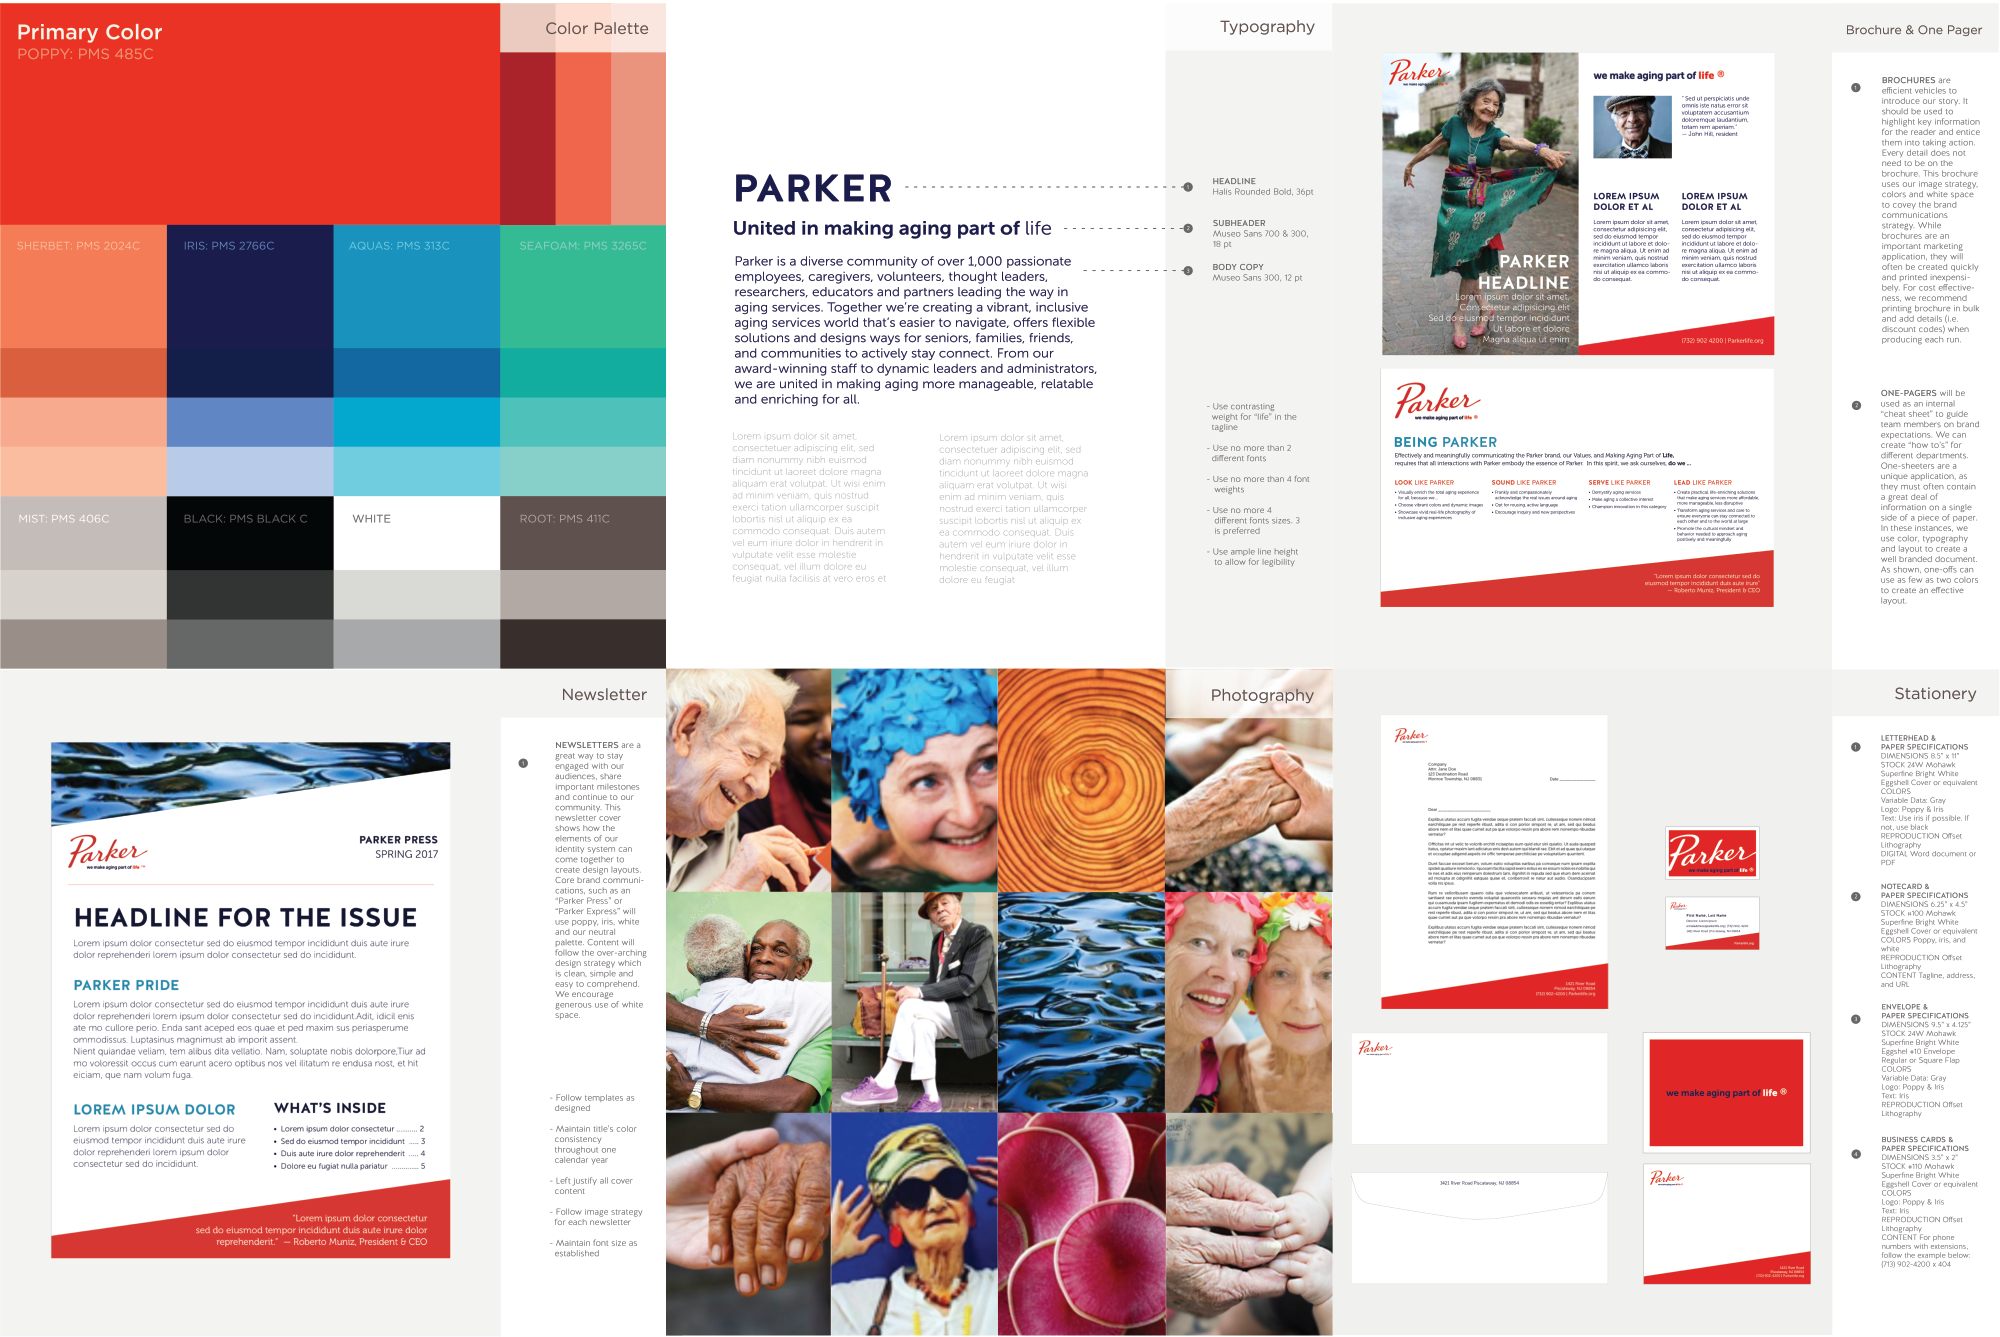 Overview of brand guidelines designed by Ideon for Parker